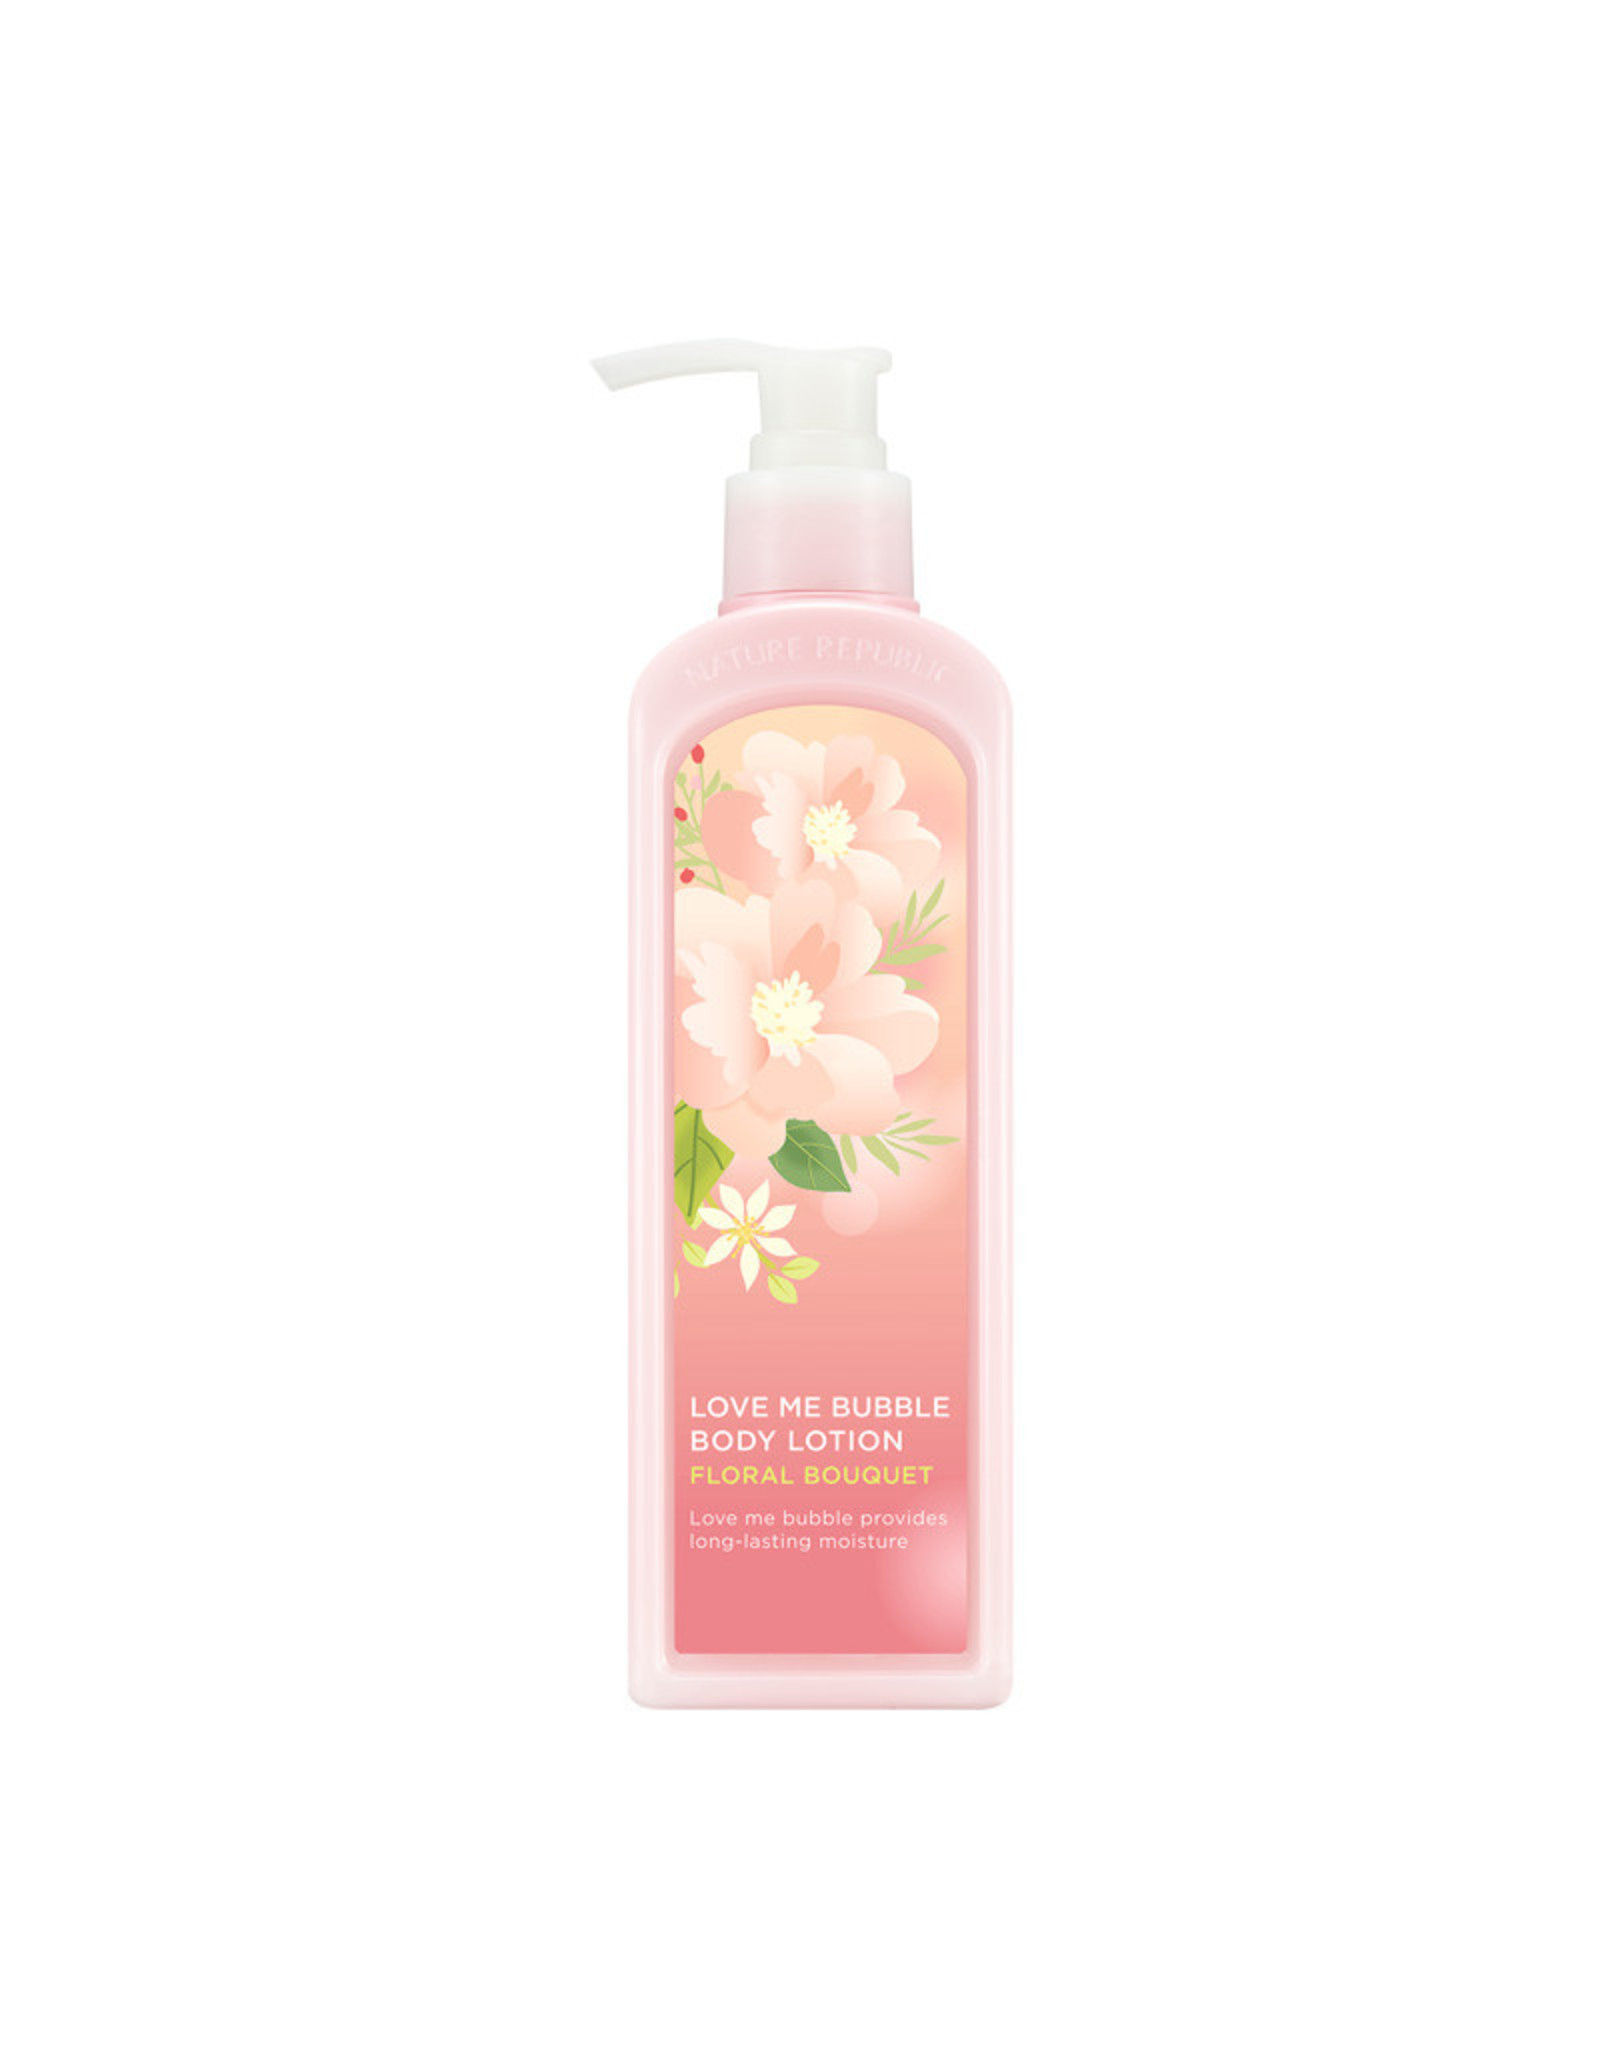 Love Me Bubble Body Lotion-Floral Bouquet (Orig $22.90)